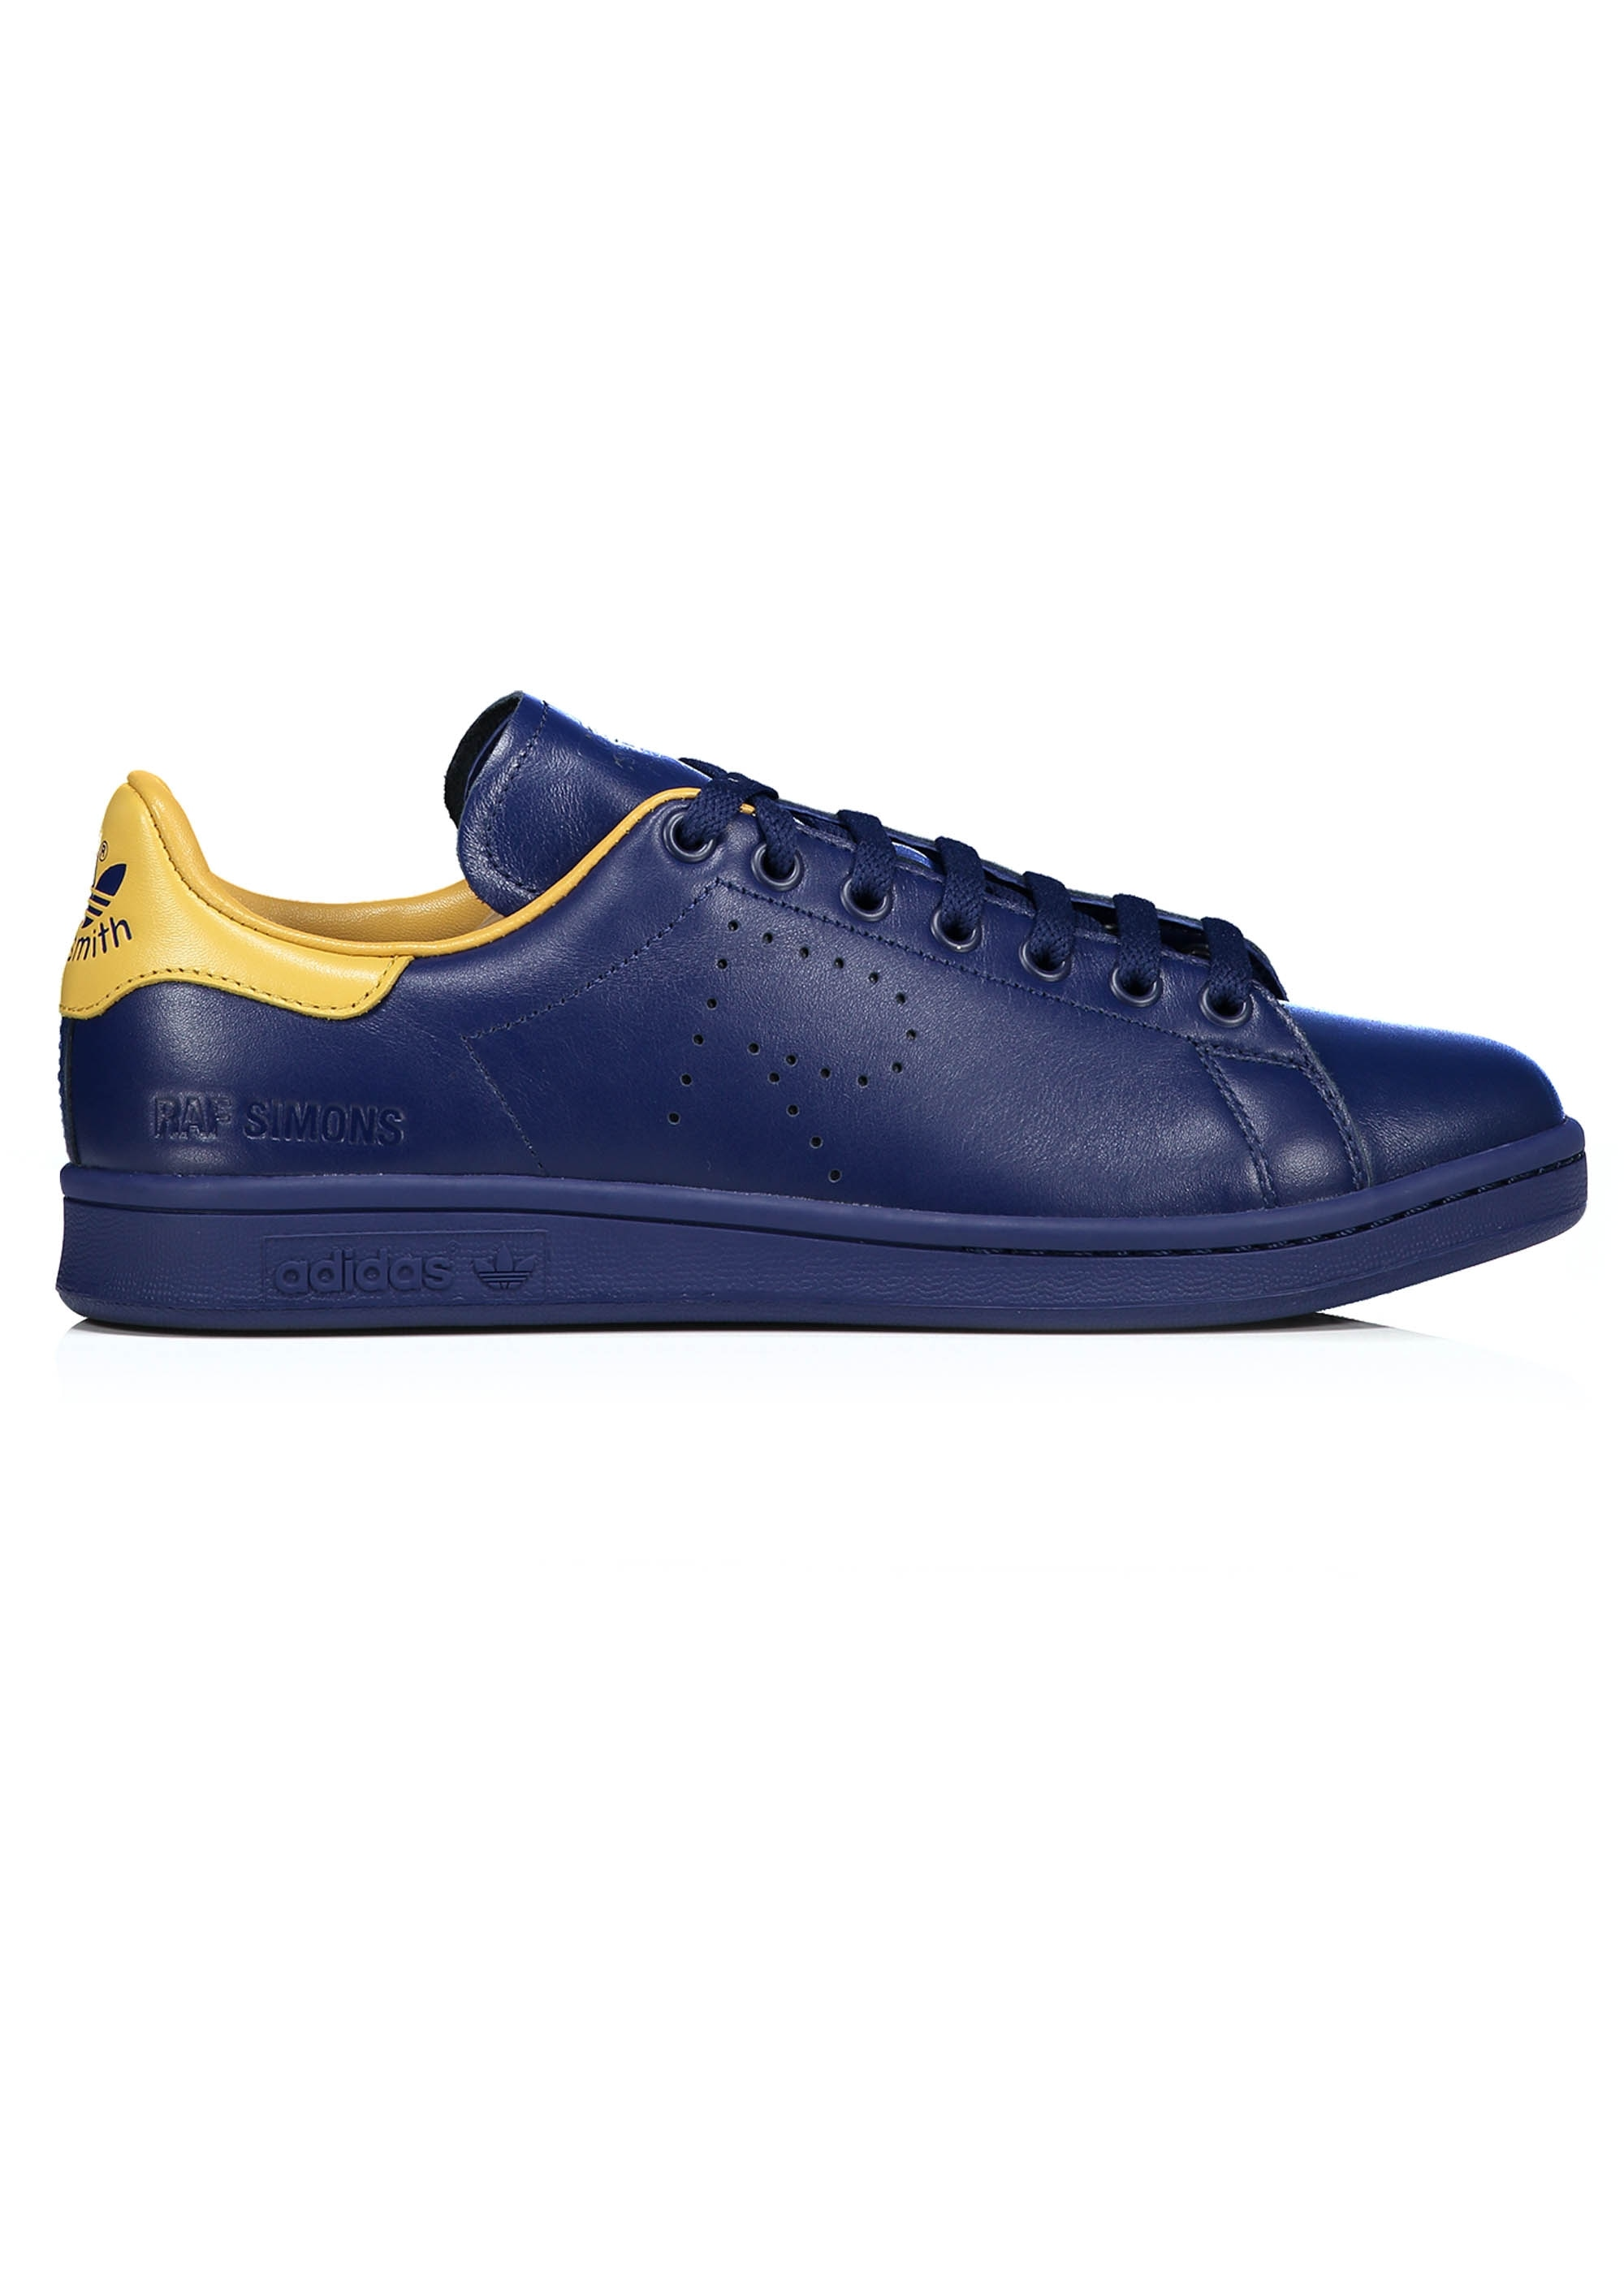 official photos 2c8f8 ab561 adidas Originals by Raf Simons Stan Smith - Night Sky